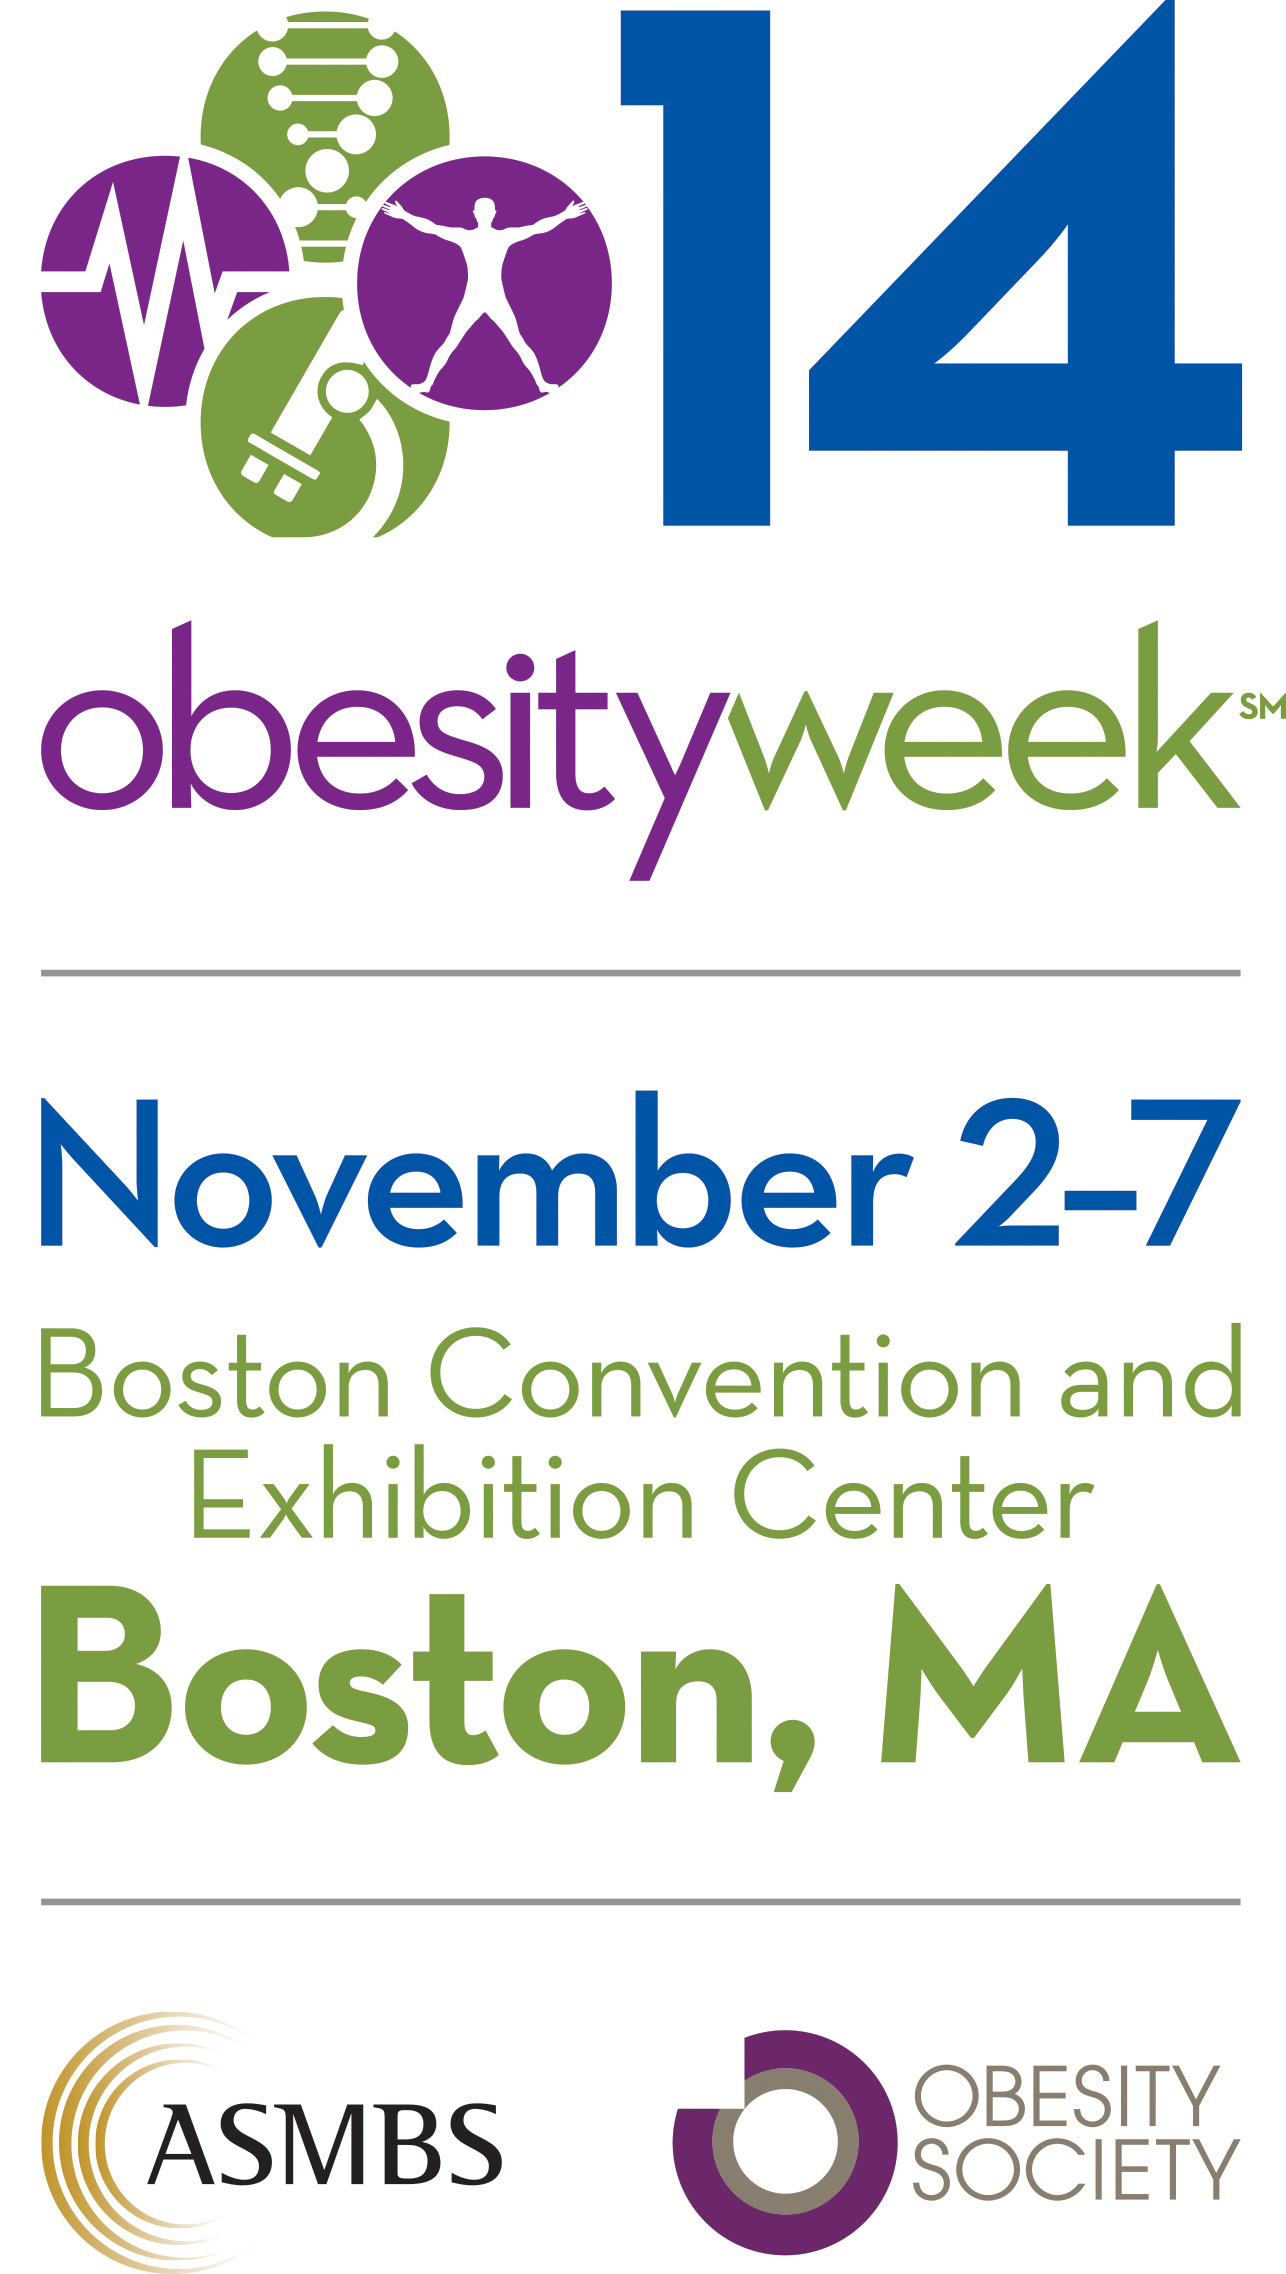 ObesityWeek 2014: Where Science and Treatment Meet